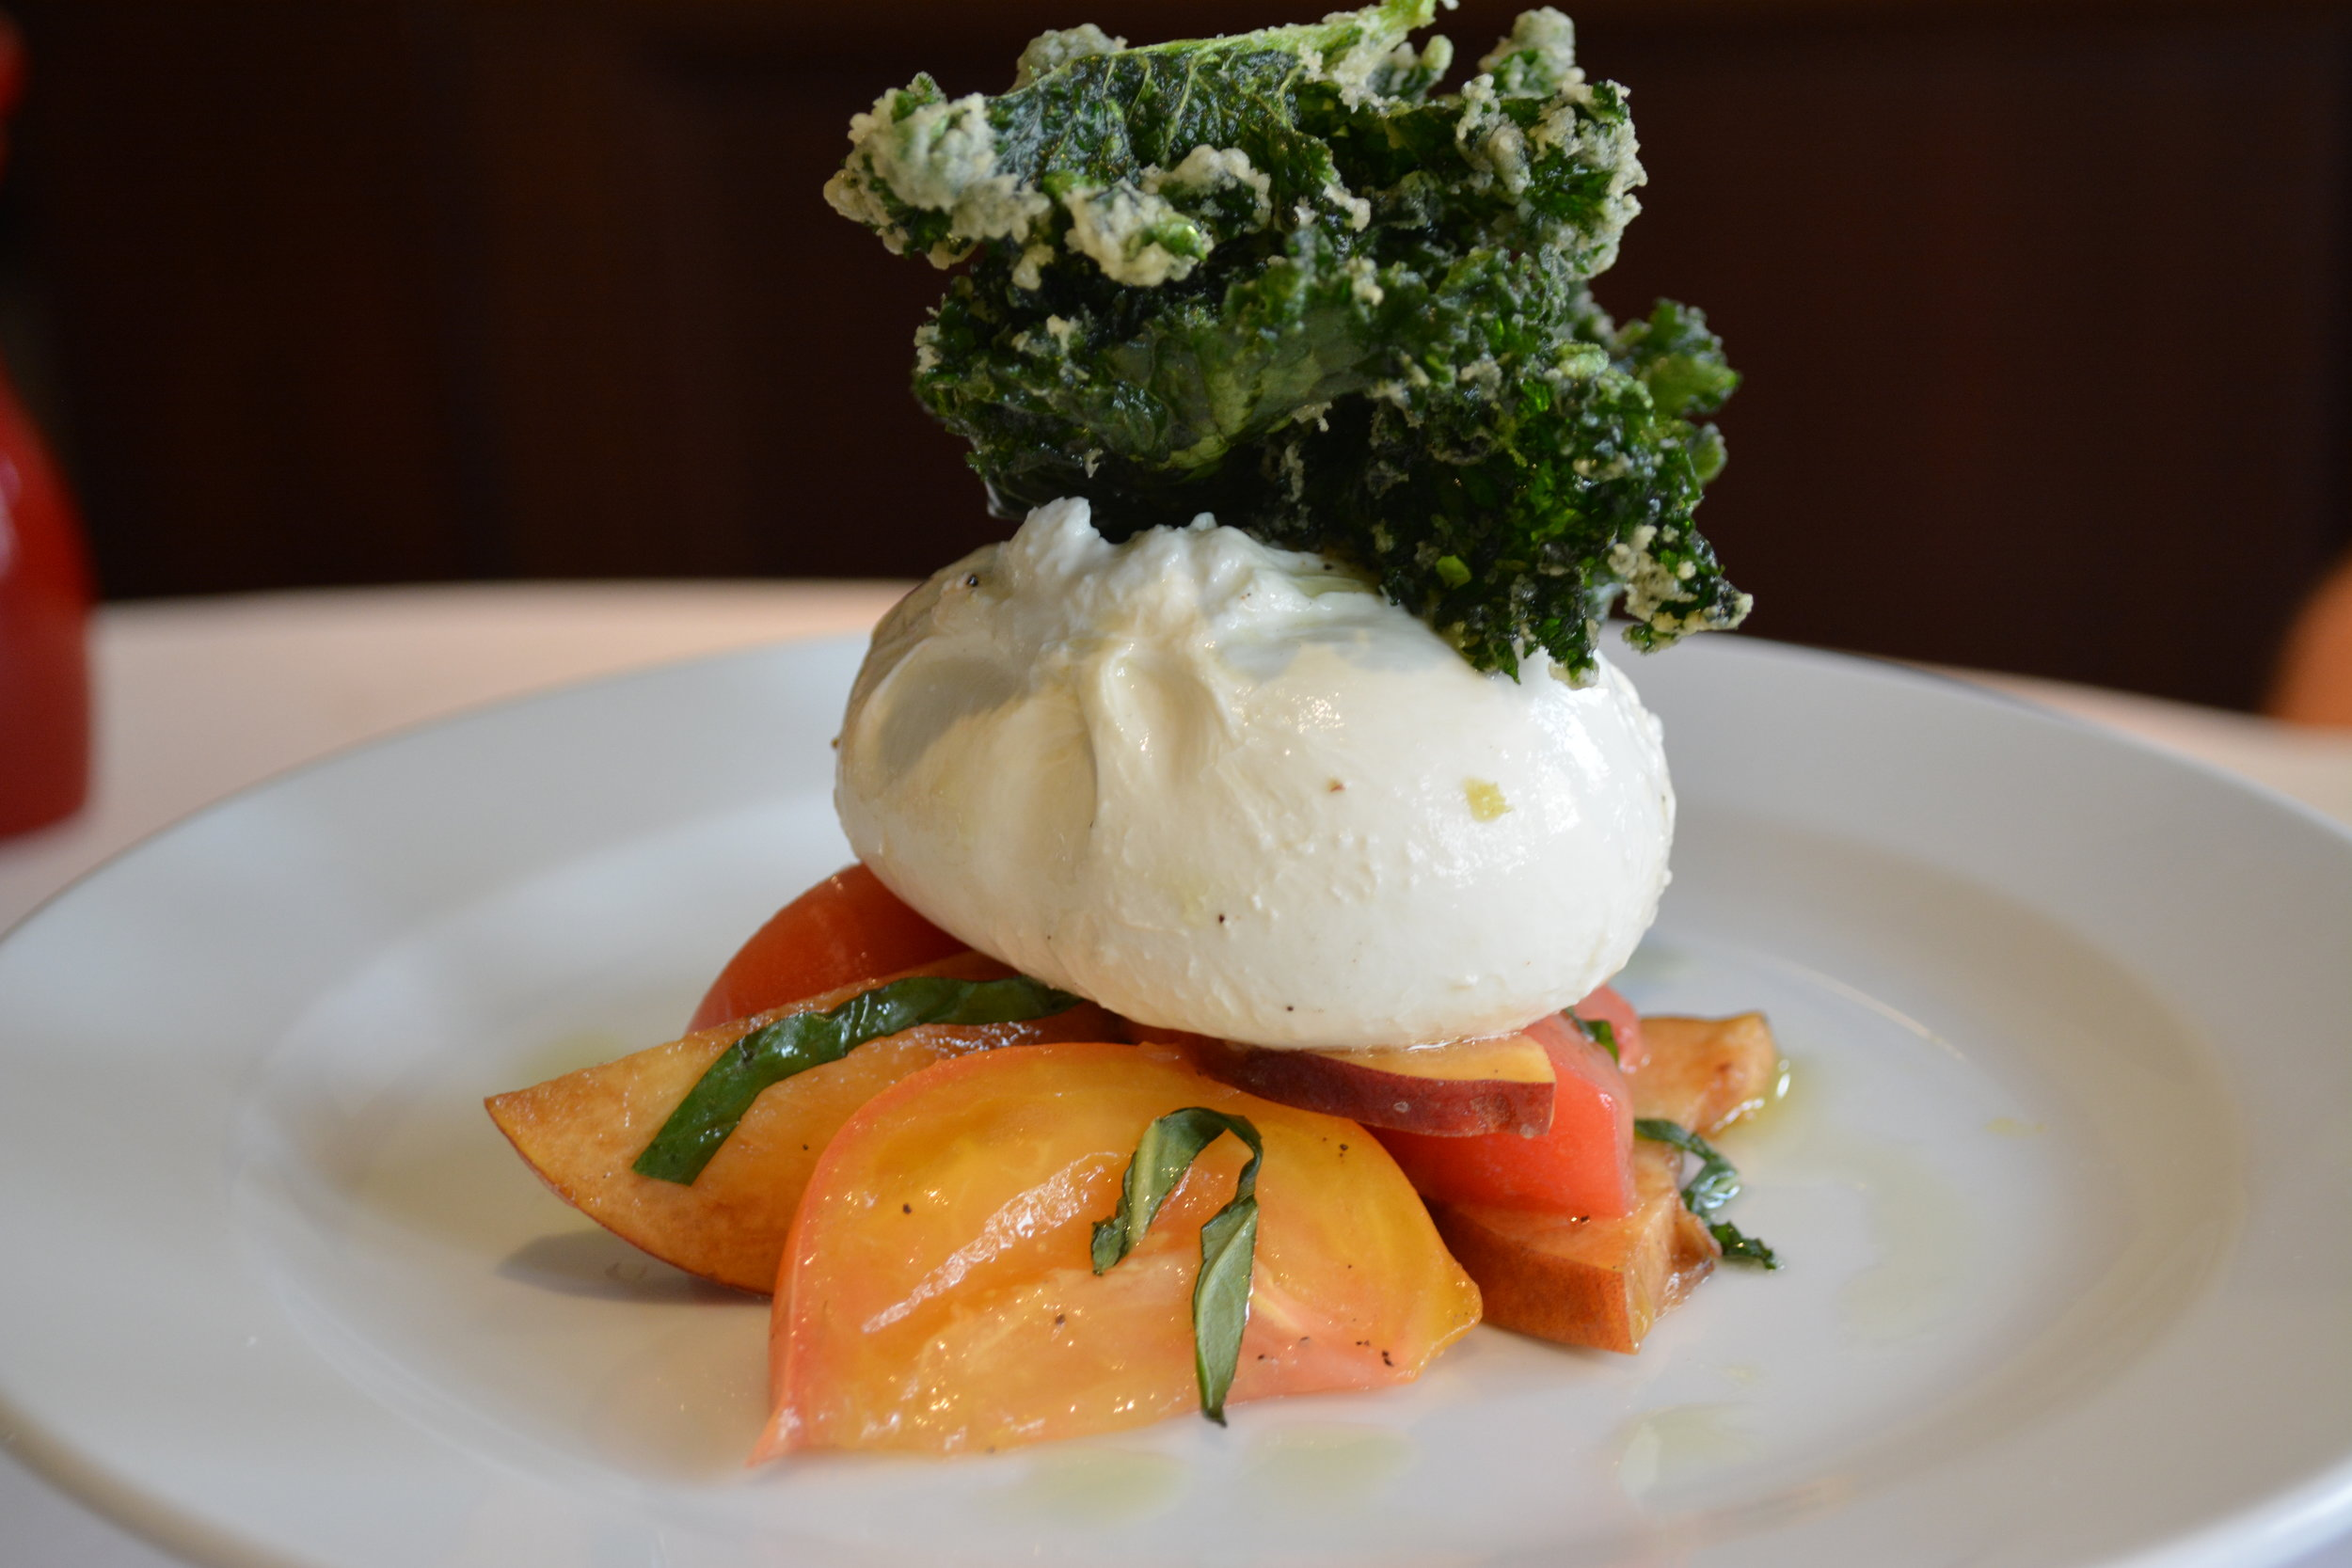 Rich, creamy Burrata ($15) with peach, heirloom tomato and crispy kale.